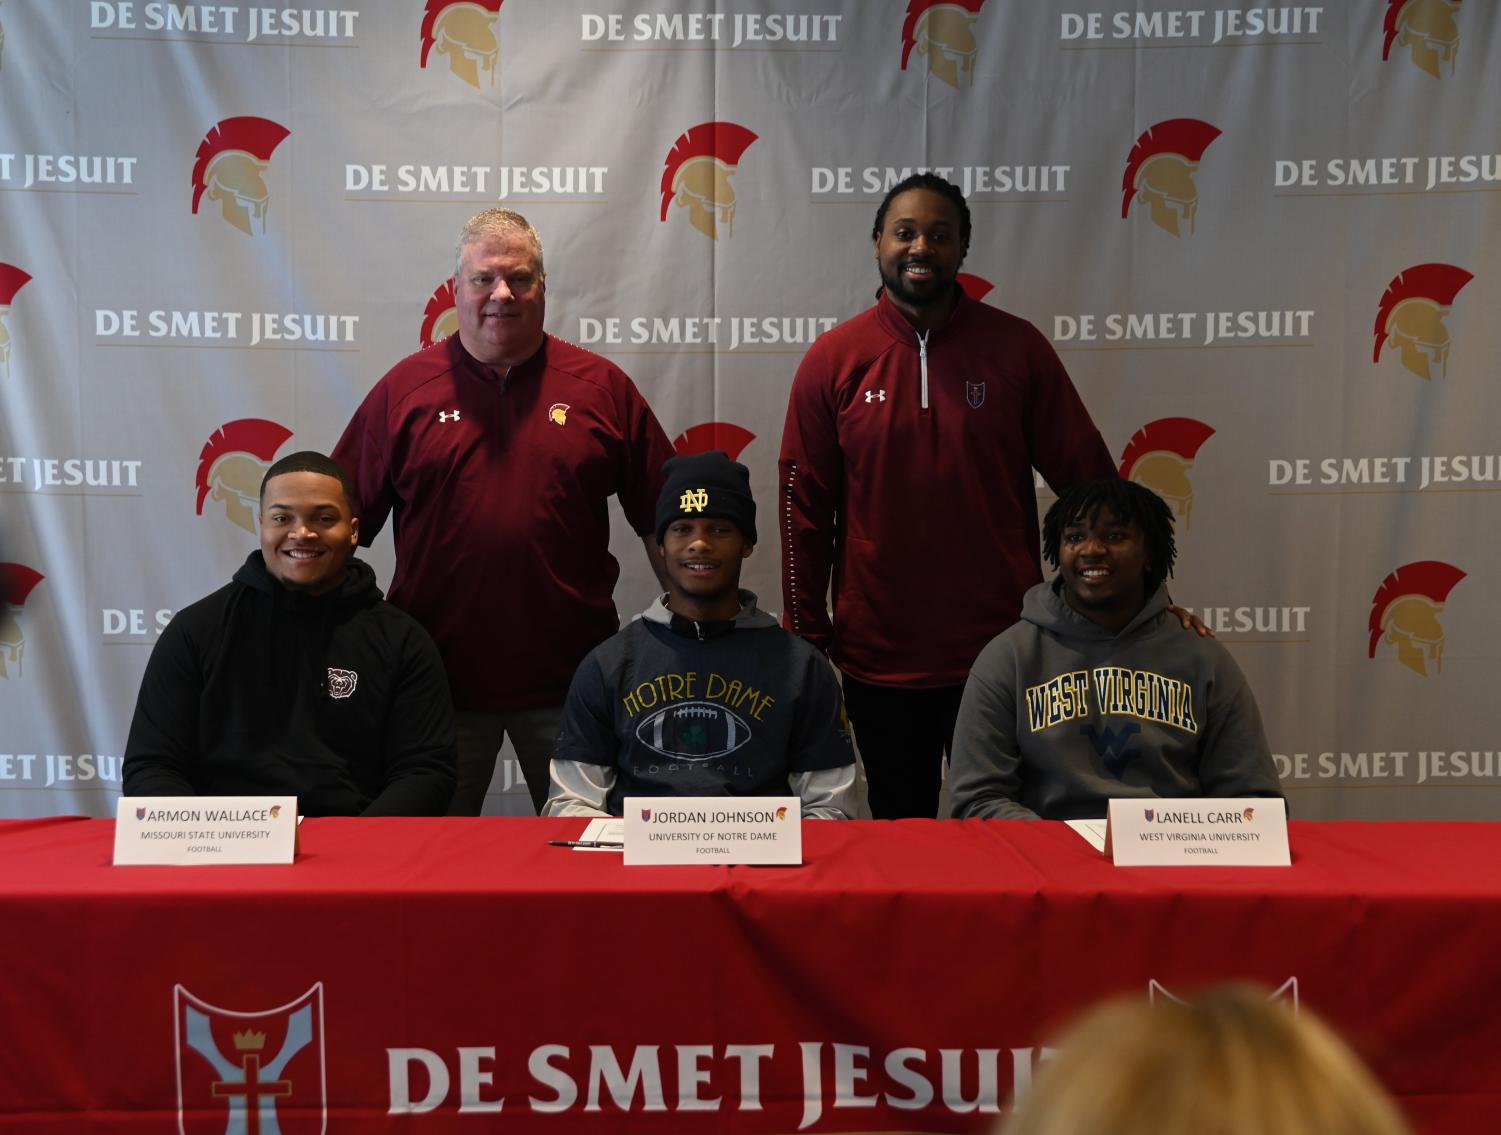 Armon Wallace, Jordan Johnson, and Lanell Carr pose with Athletic Director John Pukala and Head Football Coach Robert Steeples for a photo before the signing ceremony on Dec. 18 in the Innovation Center.